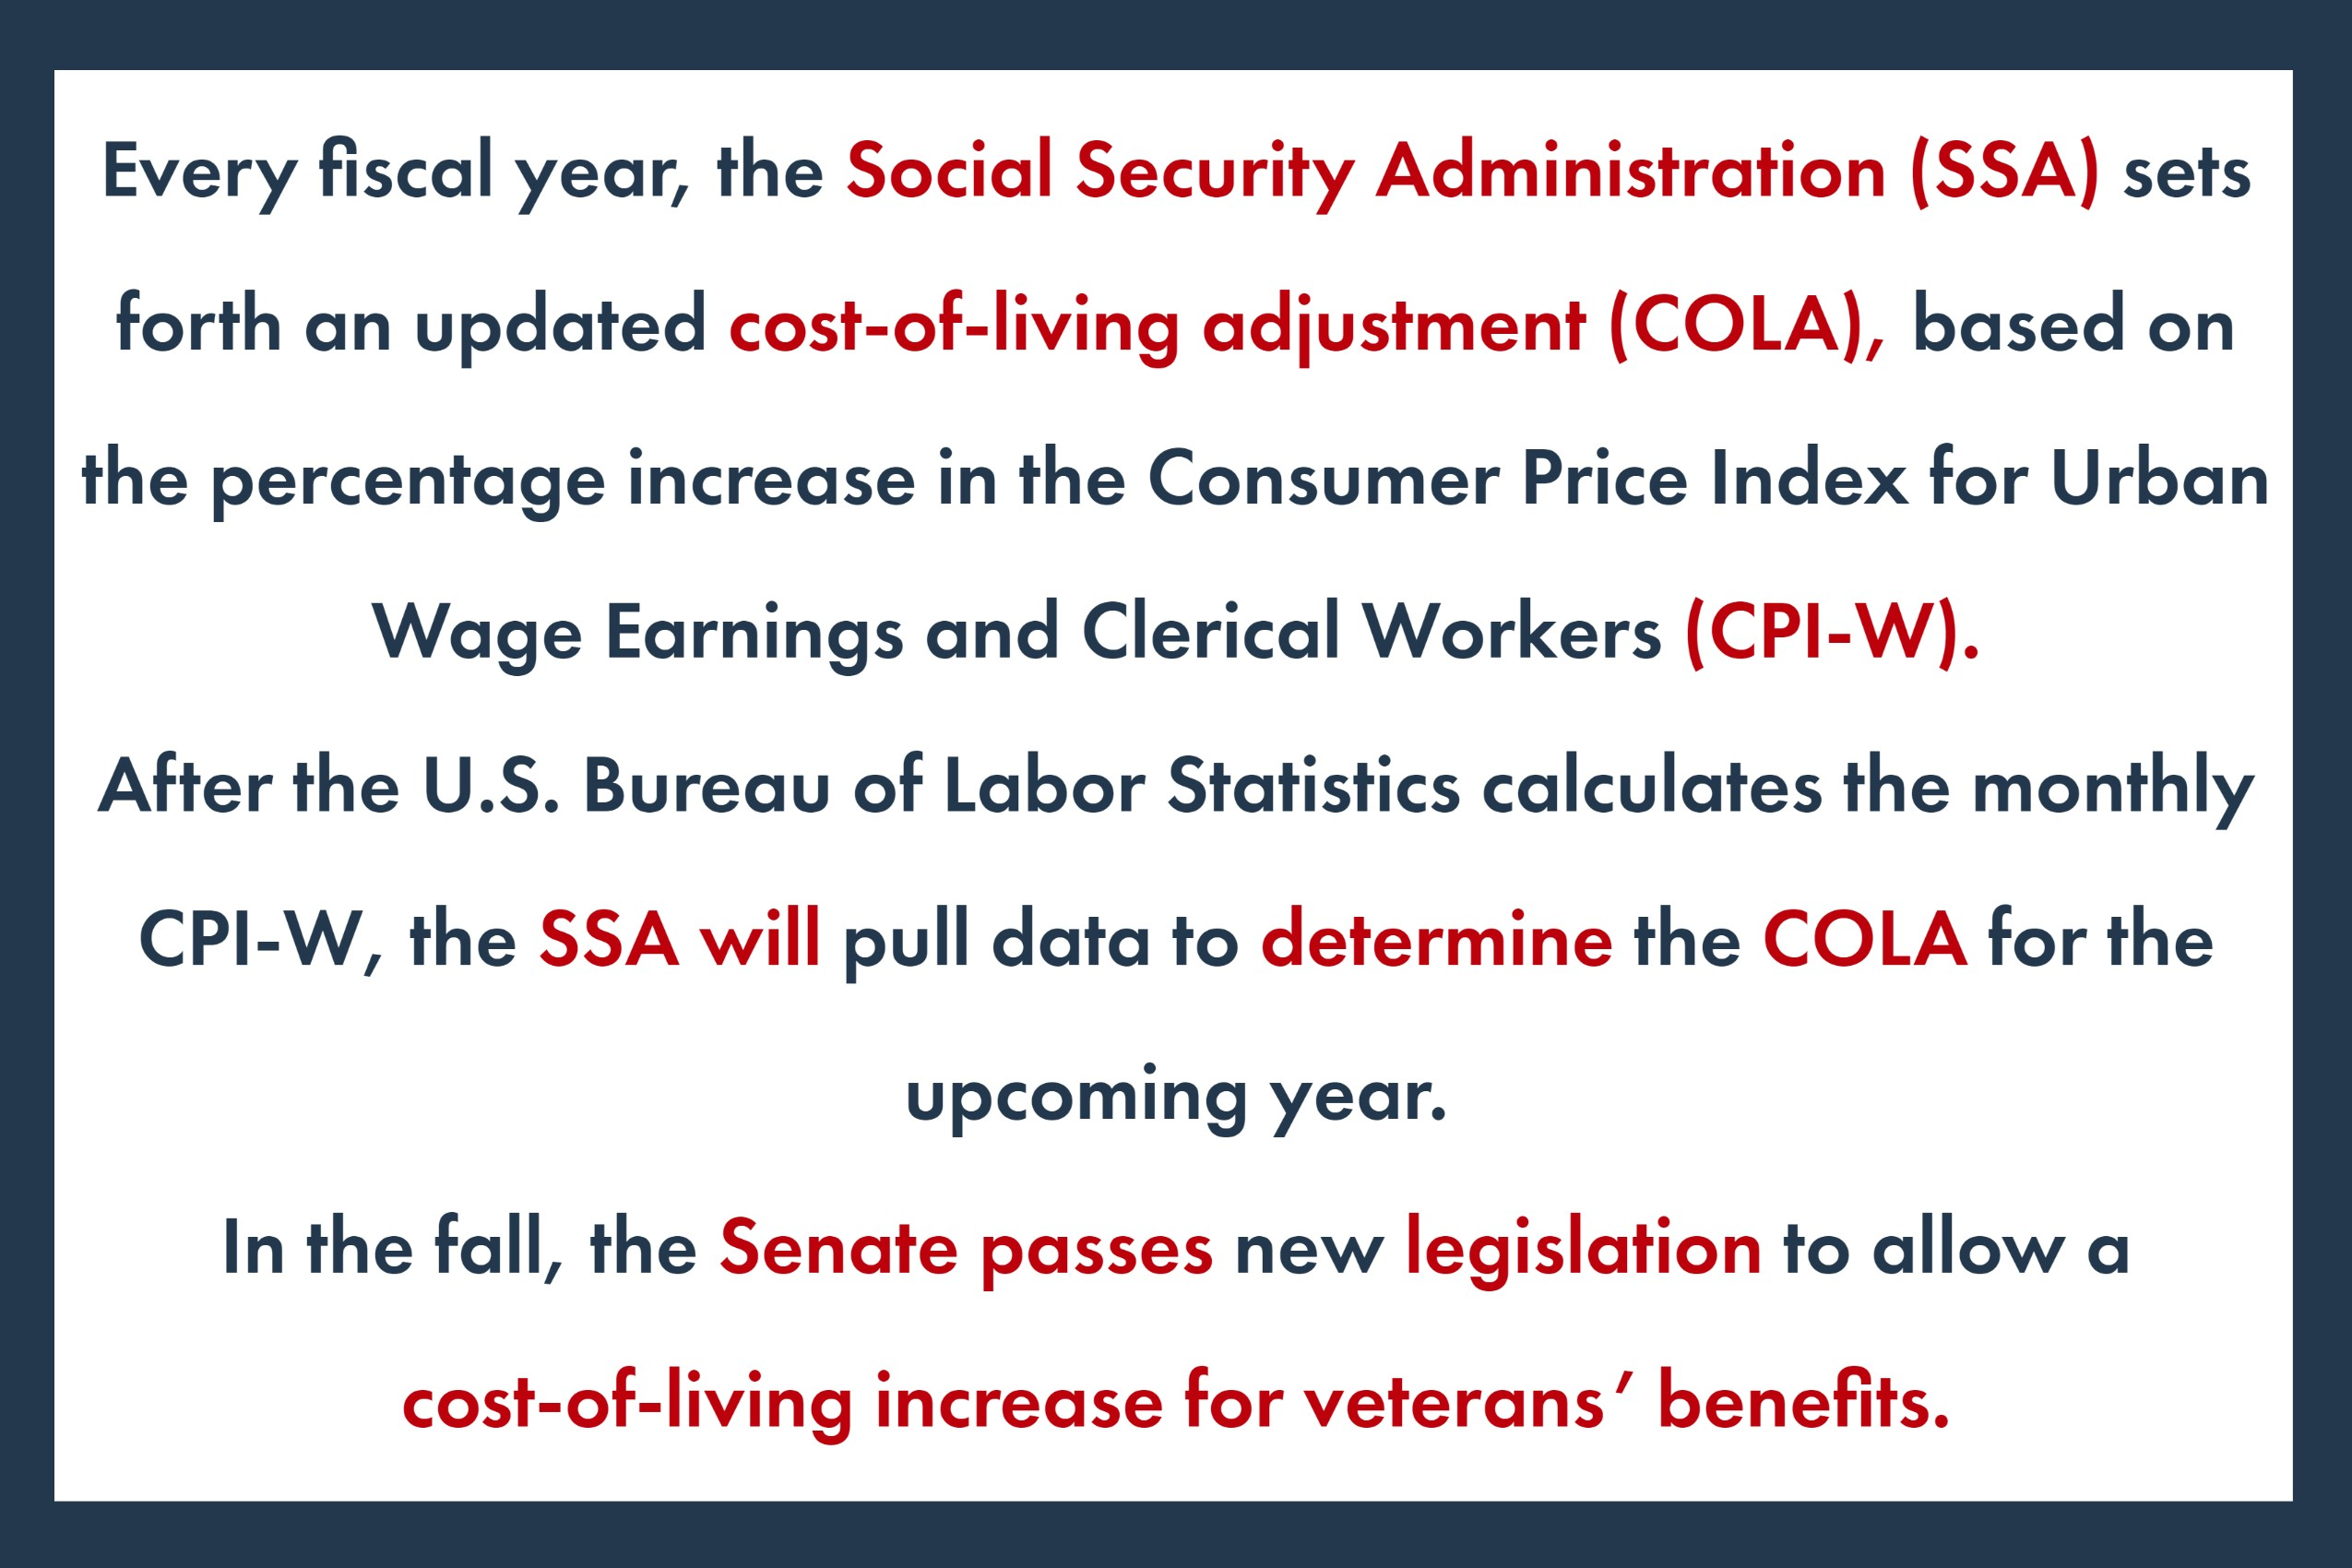 Every fiscal year, the Social Security Administration (SSA) sets forth an updated cost-of-living adjustment (COLA), based on the percentage increase in the Consumer Price Index for Urban Wage Earnings and Clerical Workers (CPI-W). After the U.S. Bureau of Labor Statistics calculates the monthly CPI-W, the SSA will pull data to determine the COLA for the upcoming year. In the fall, the Senate passes new legislation to allow a cost-of-living increase for veterans' benefits.